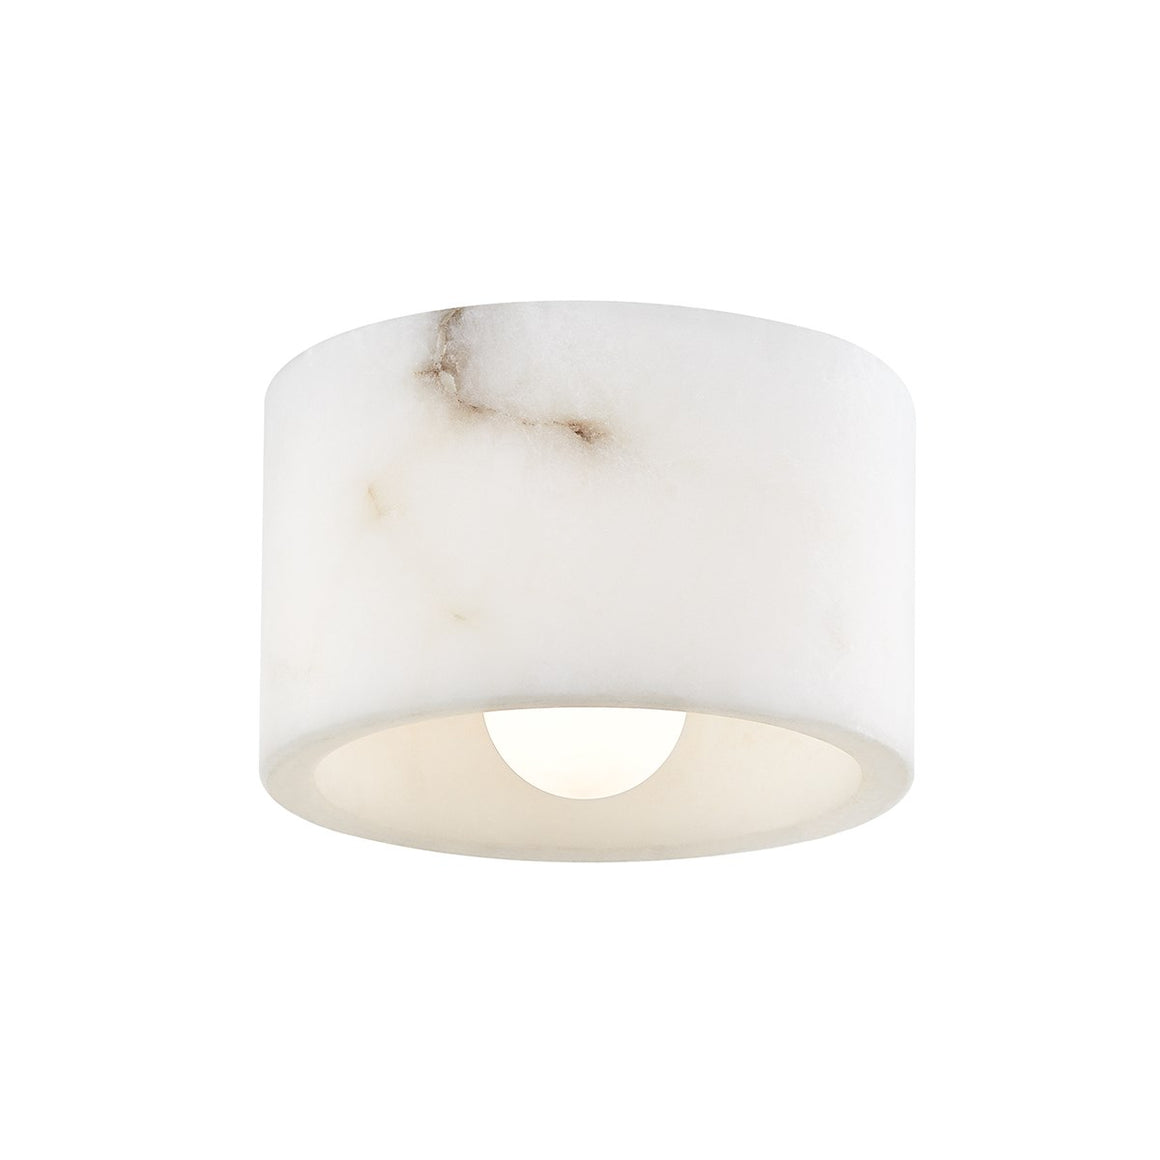 Loris Light- flush mount or sconce